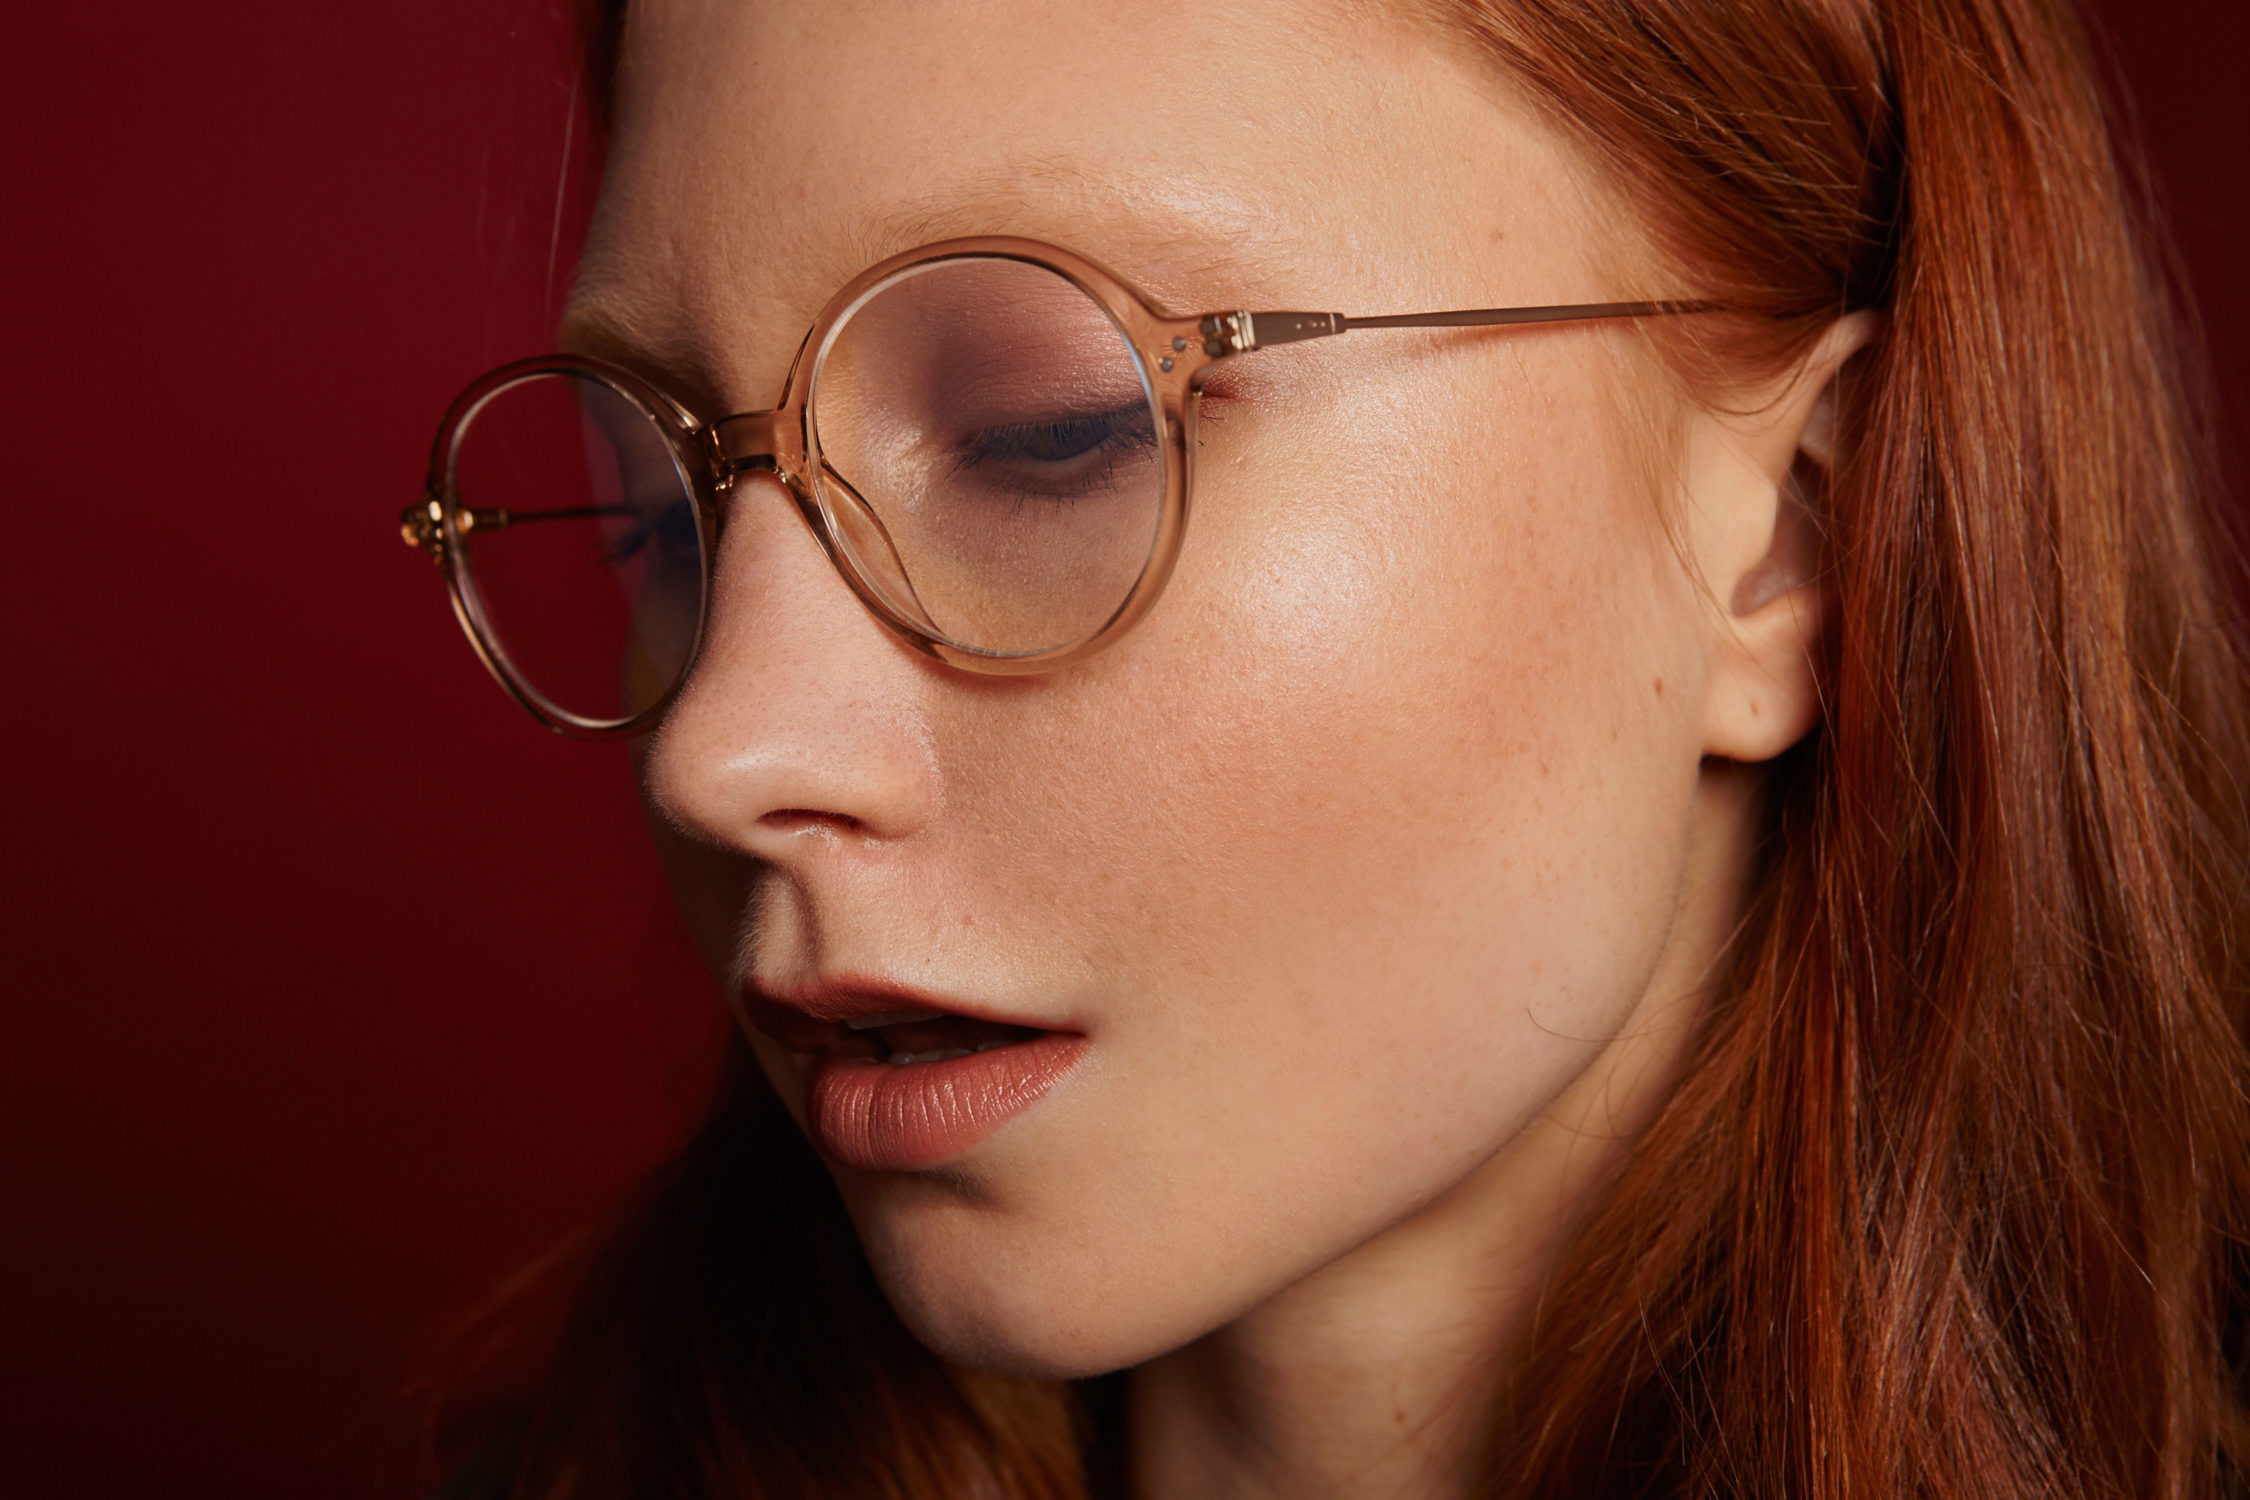 Kingdom acetate rounded crystal sunglasses by GIGI Studios